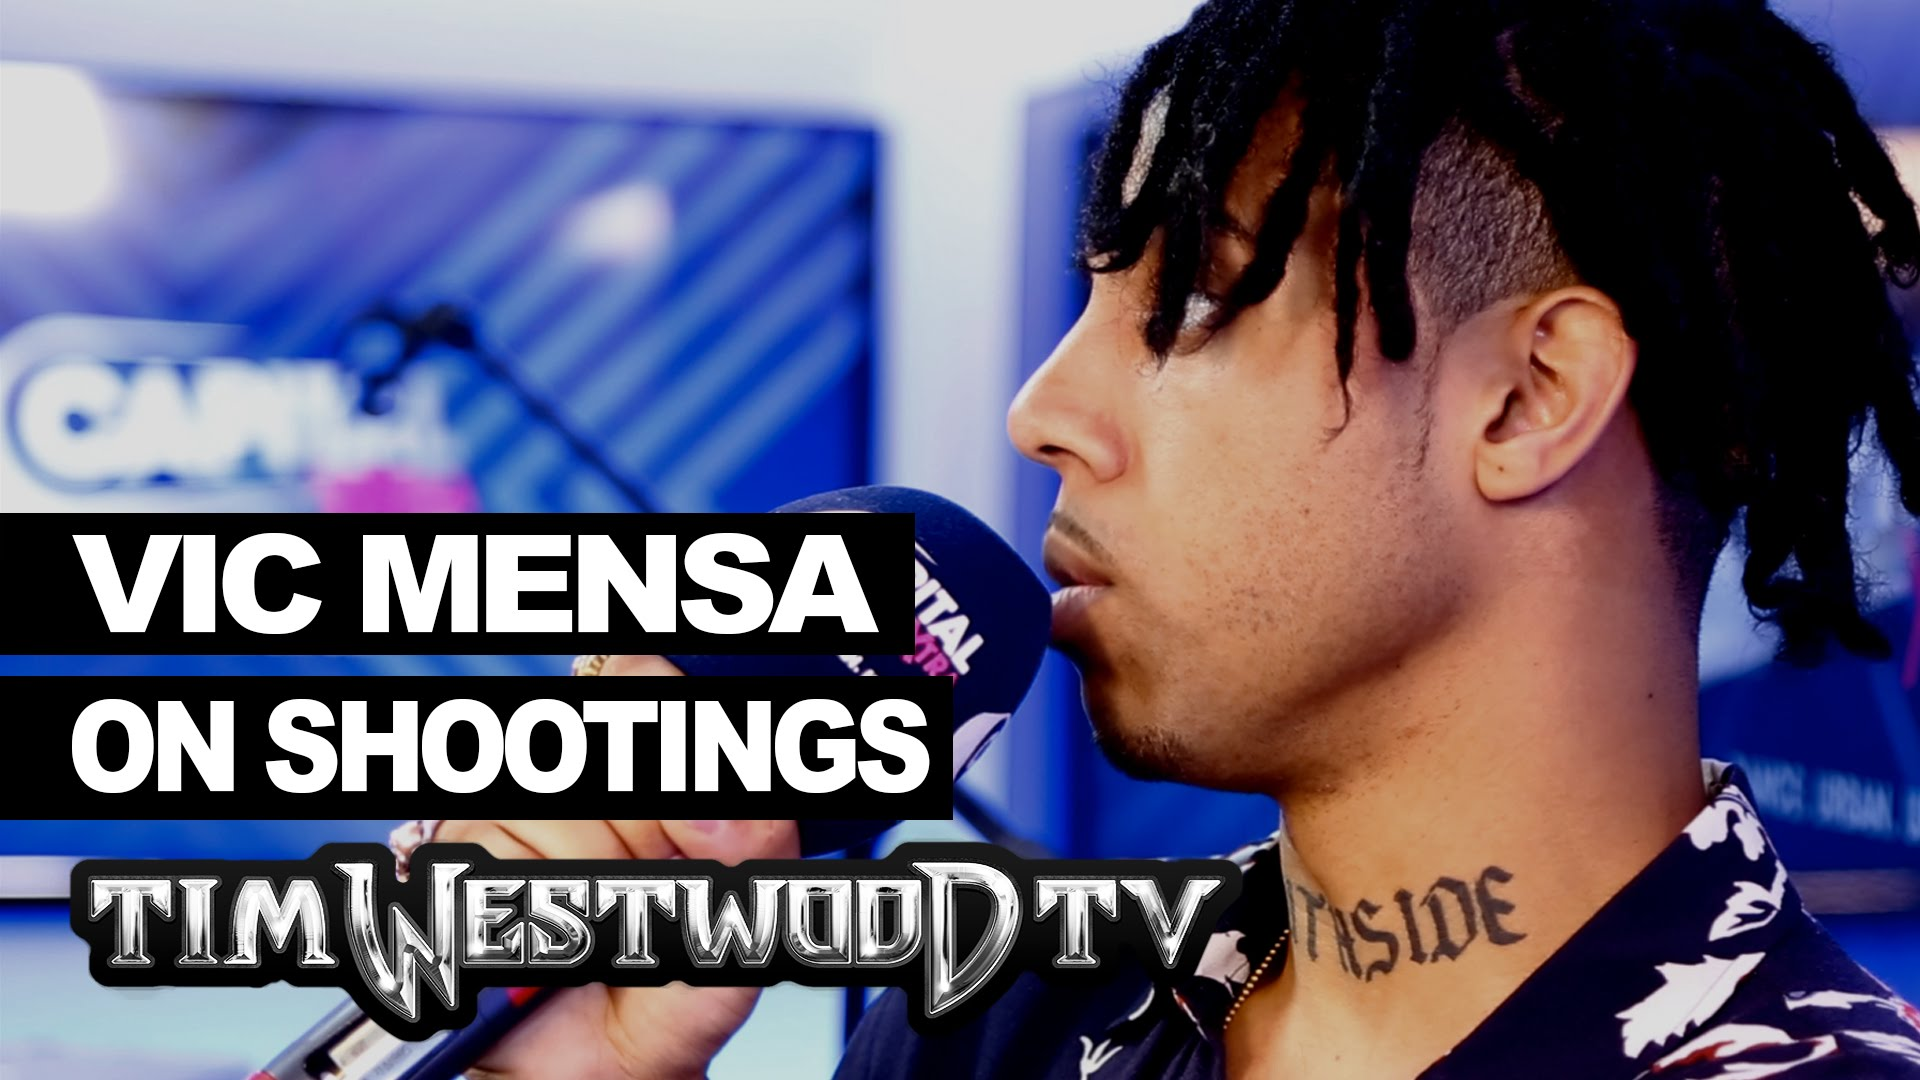 LIFE: Vic Mensa says its time to speak out about the shootings – Westwood